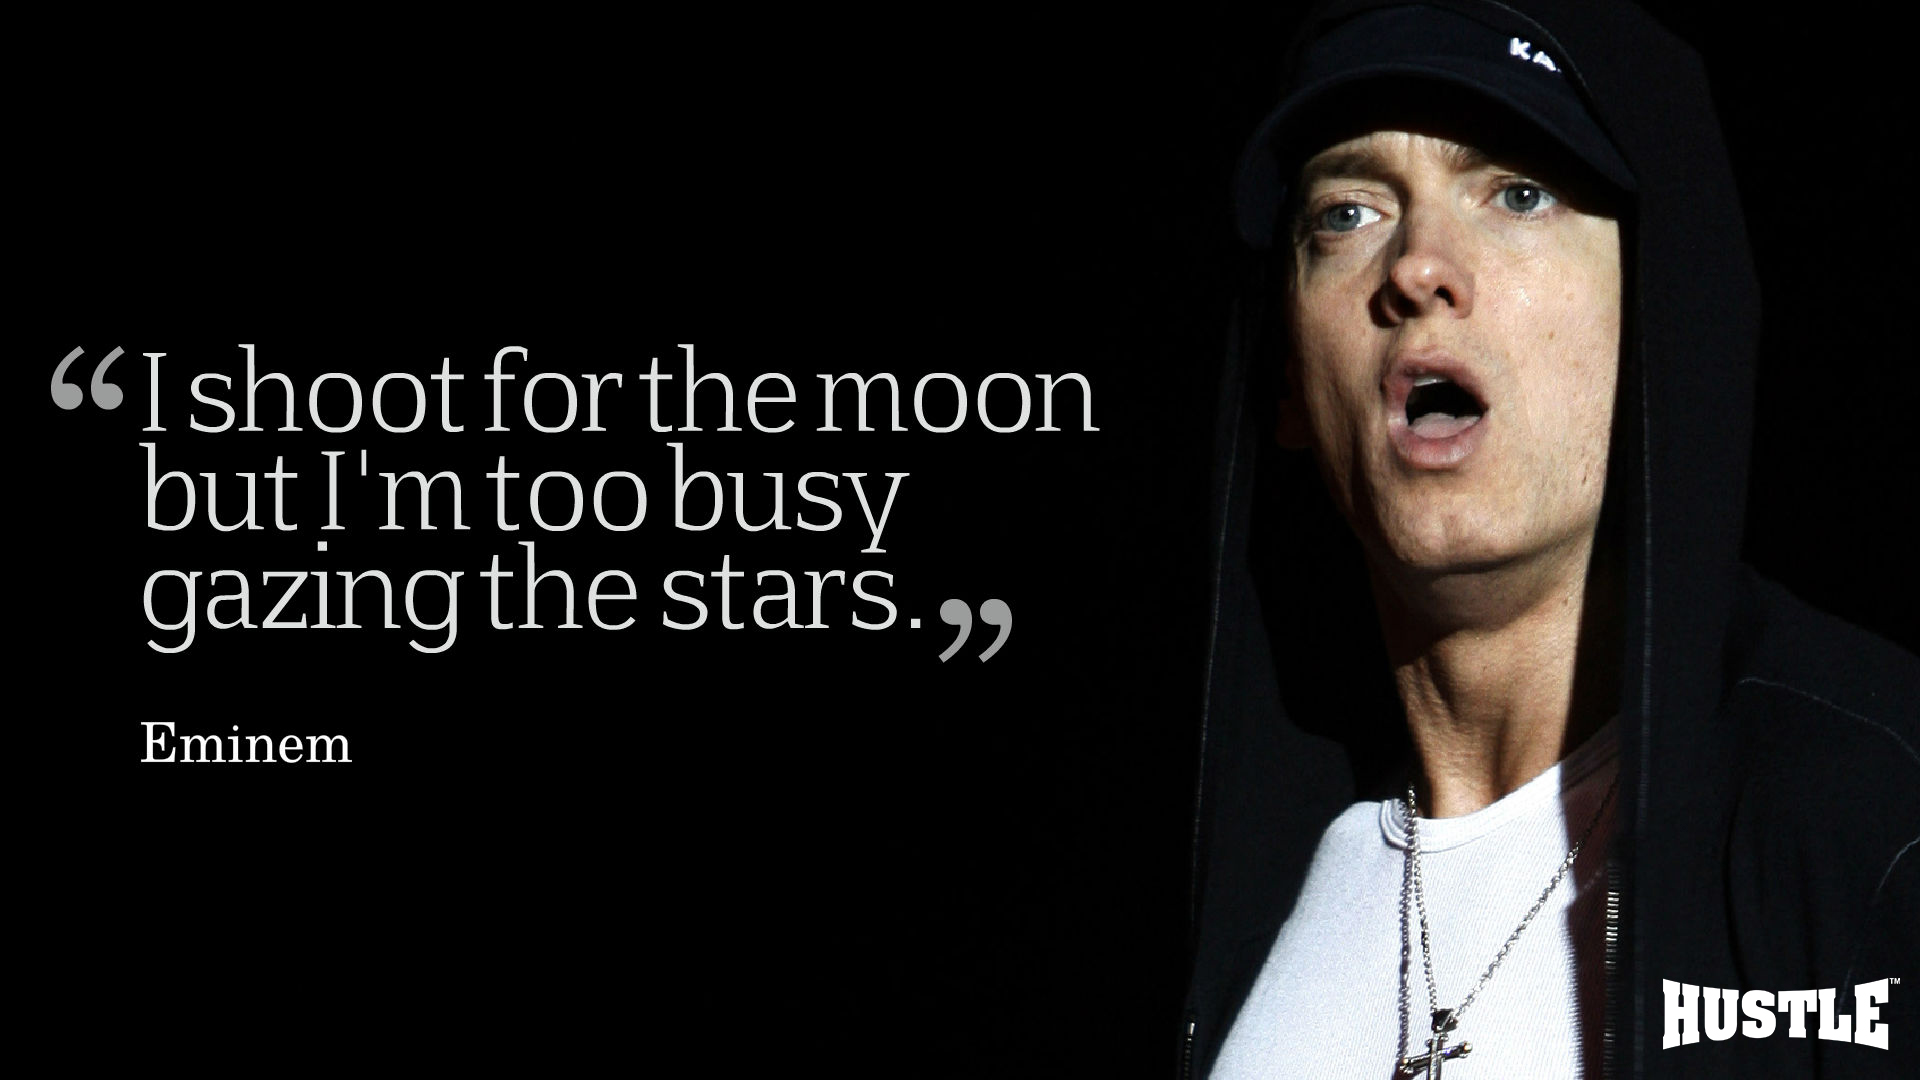 15 Quoted Eminem Wallpapers That Must Be In Your Collection 1920x1080